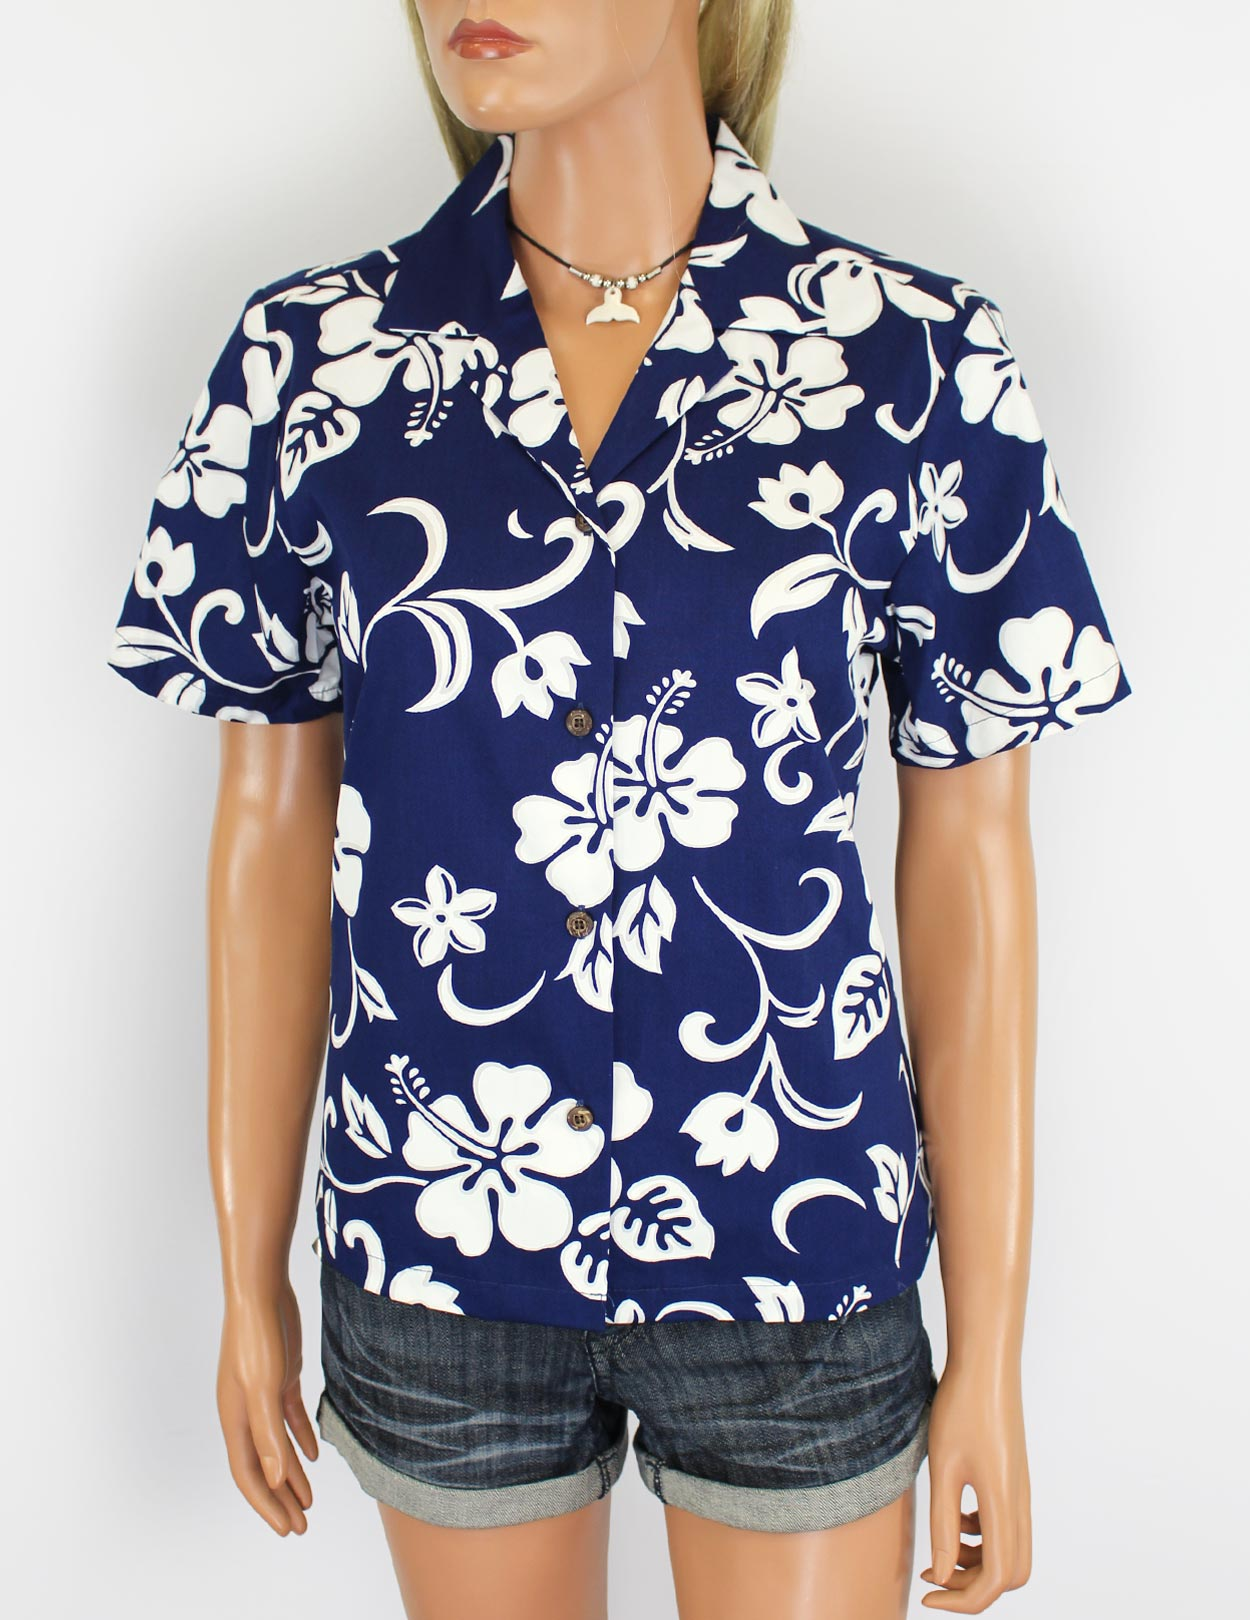 Hawaii clothes stores